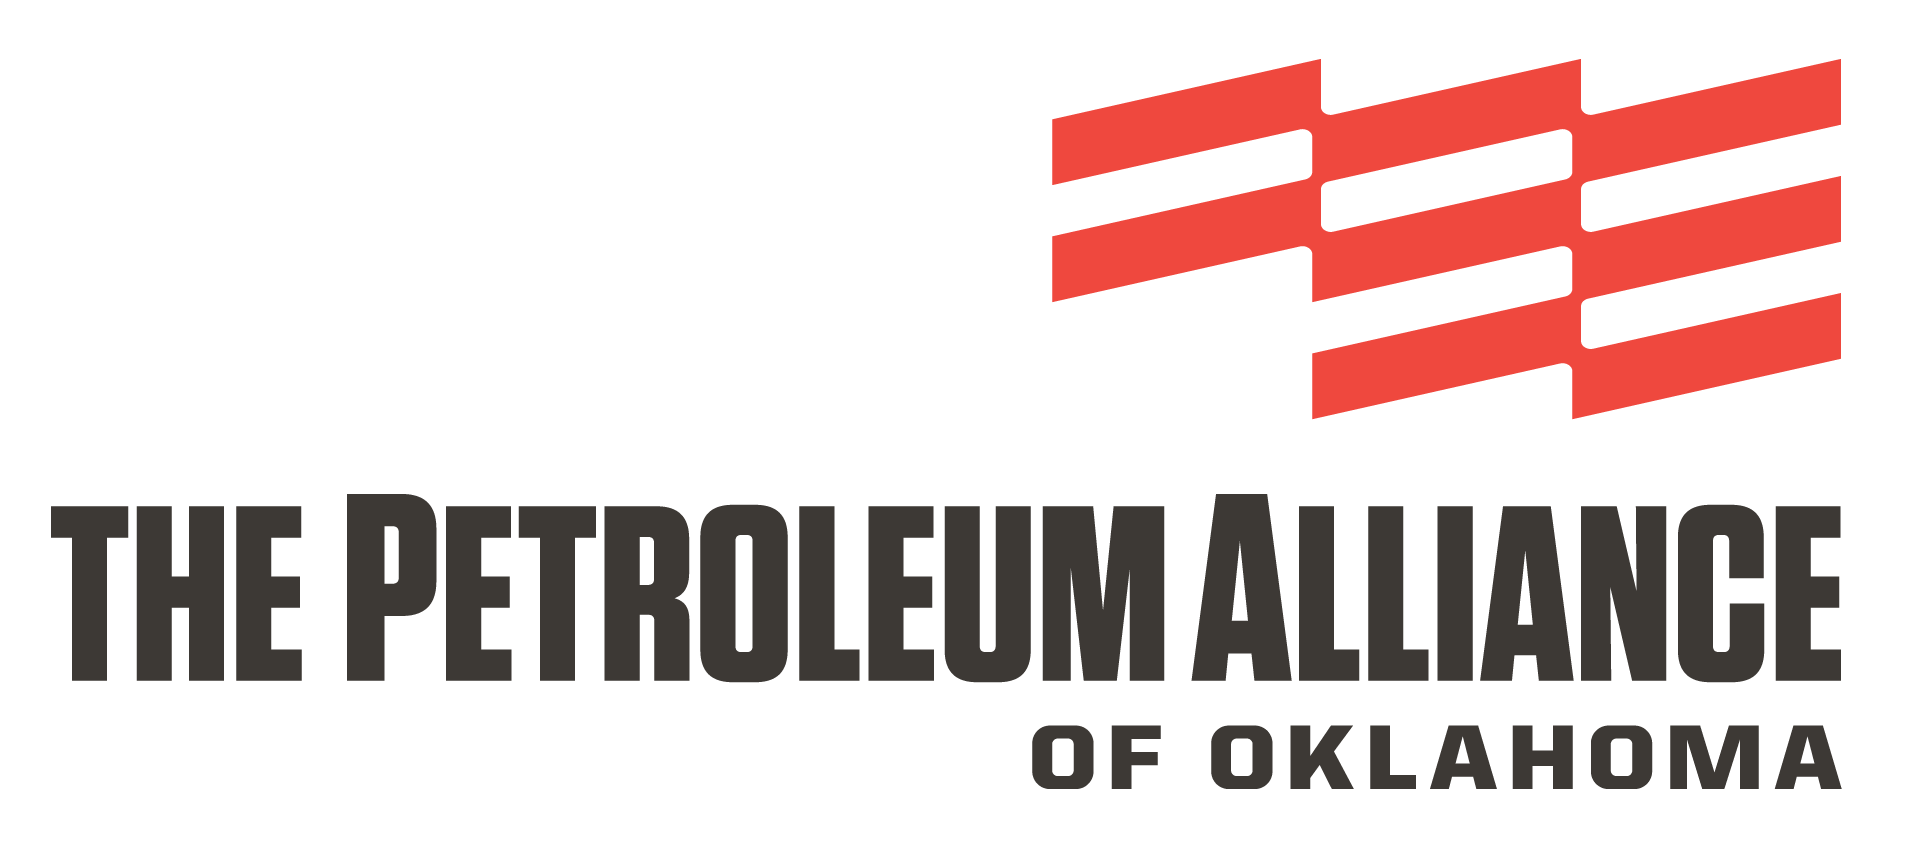 The Petroleum Alliance of Oklahoma Fall Conference